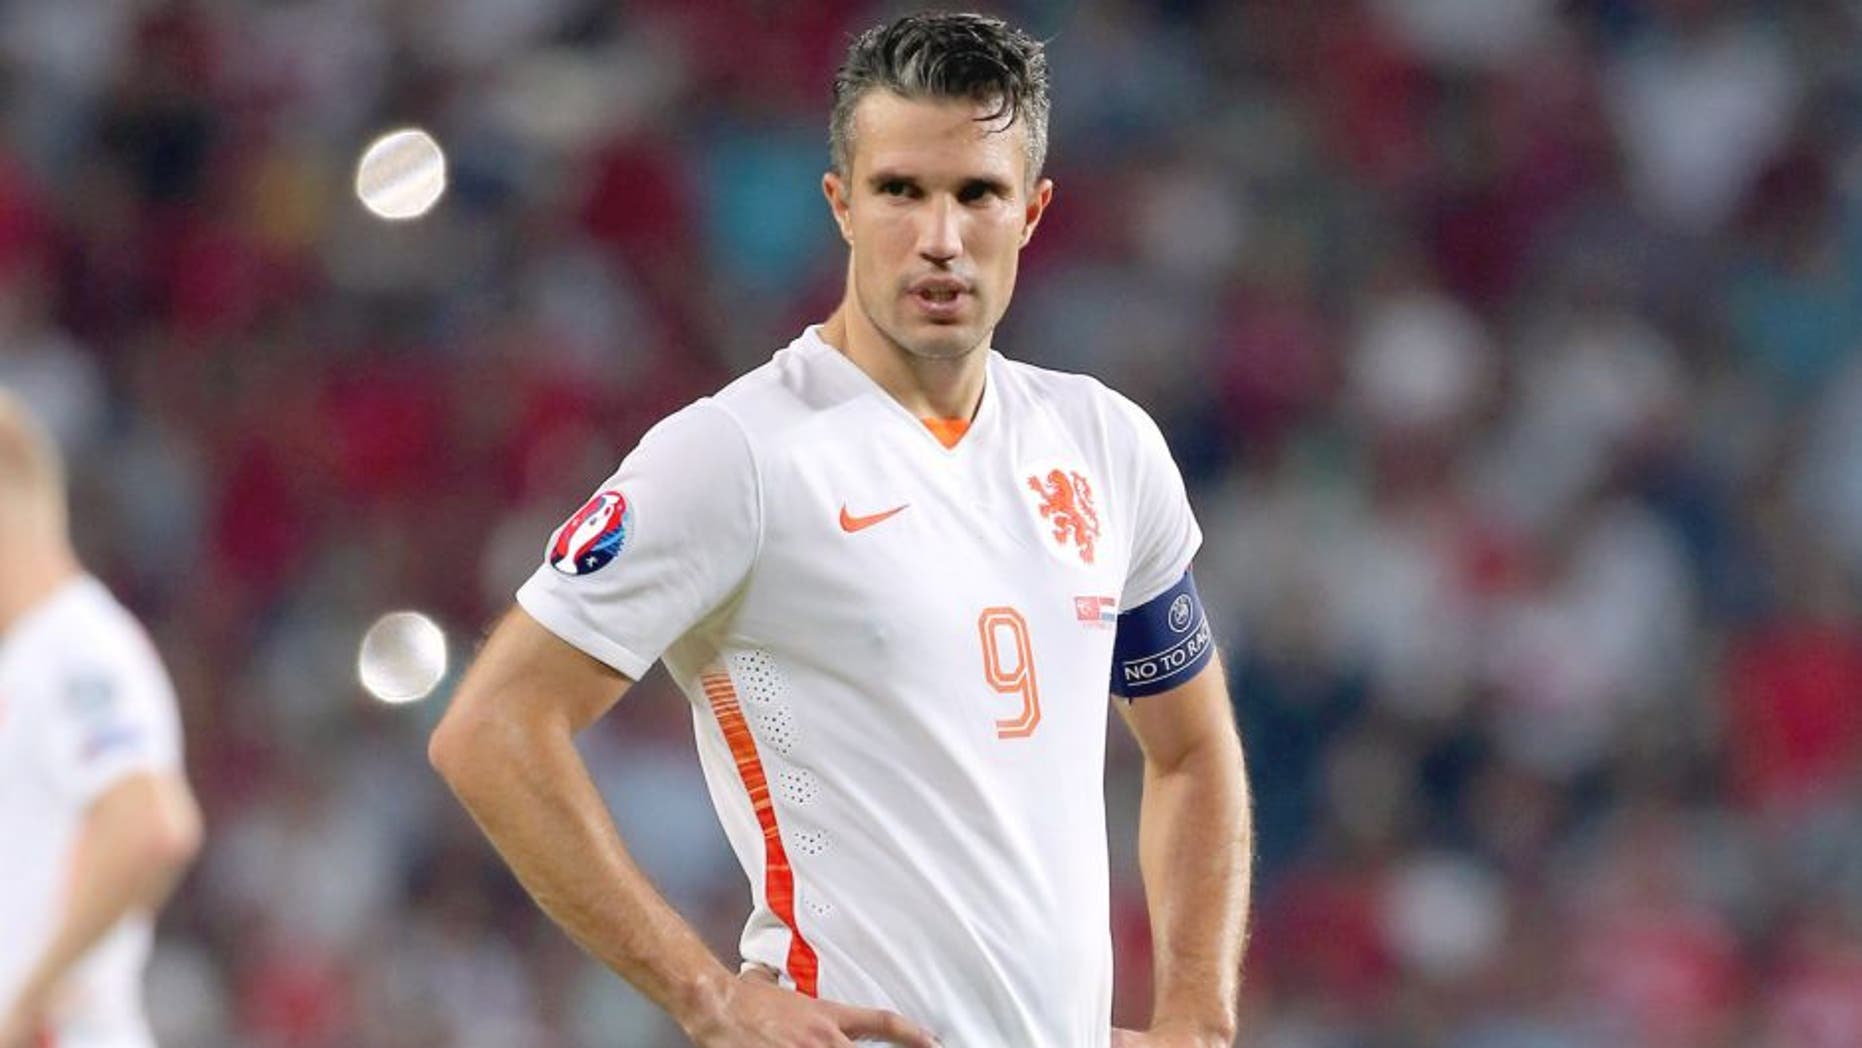 Netherland's Robin Van Persie look on at the end of the Euro 2016 qualifying match between Turkey and Netherlands at the Arena Stadium in Konya on September 6, 2015. Turkey defeated the Netherlands 3-0. AFP PHOTO/STRINGER (Photo credit should read STR/AFP/Getty Images)